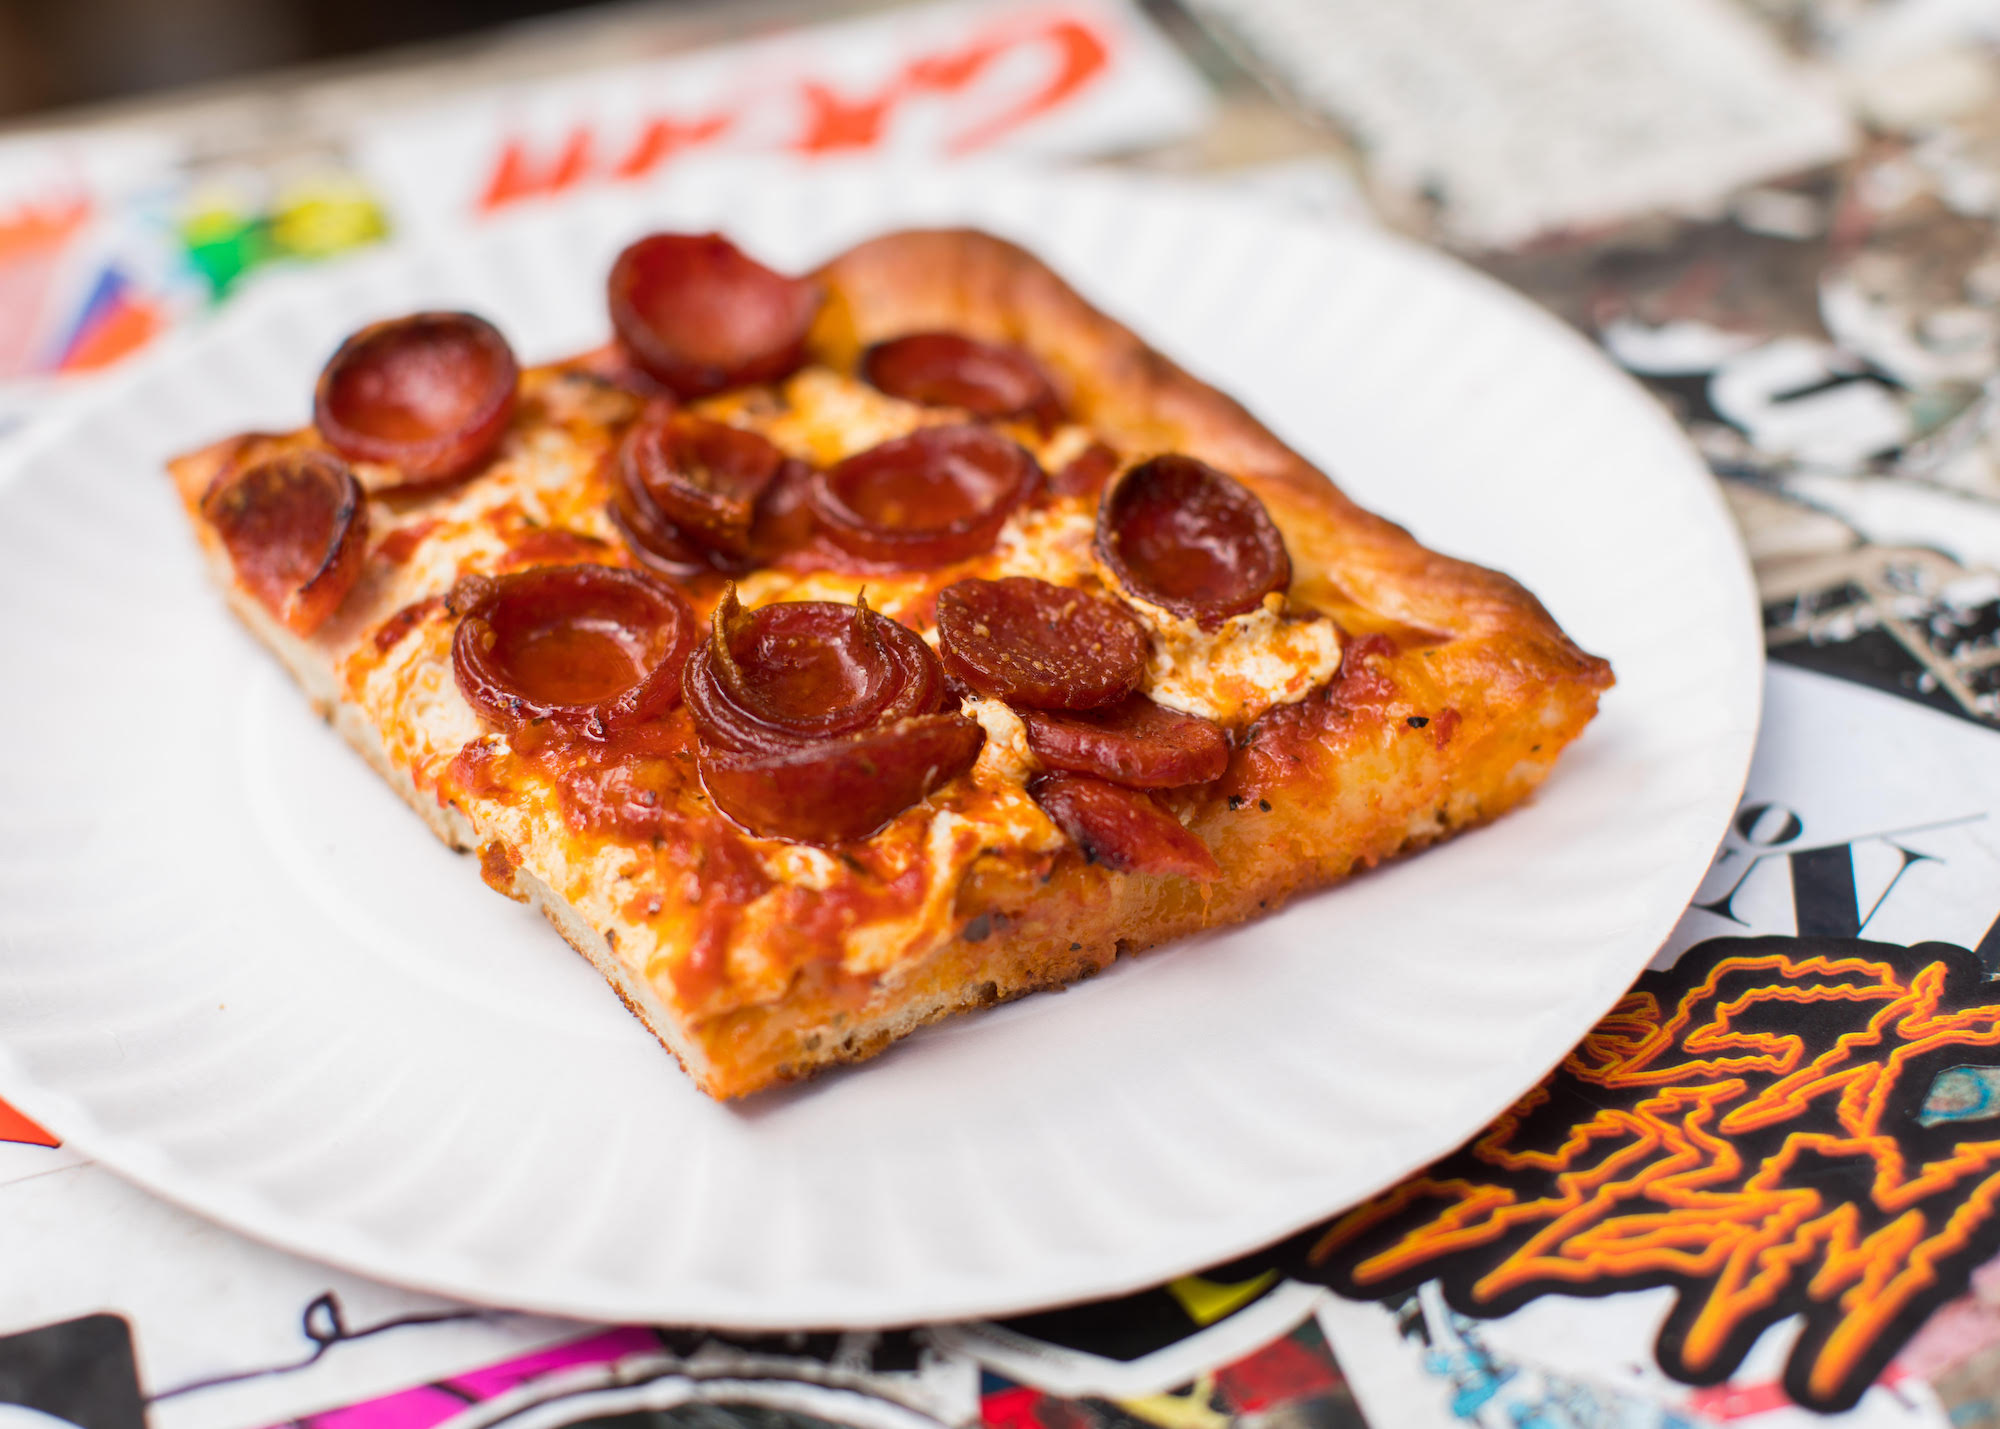 A square slice of pepperoni pizza with rolled-up cups and lots of cheese.